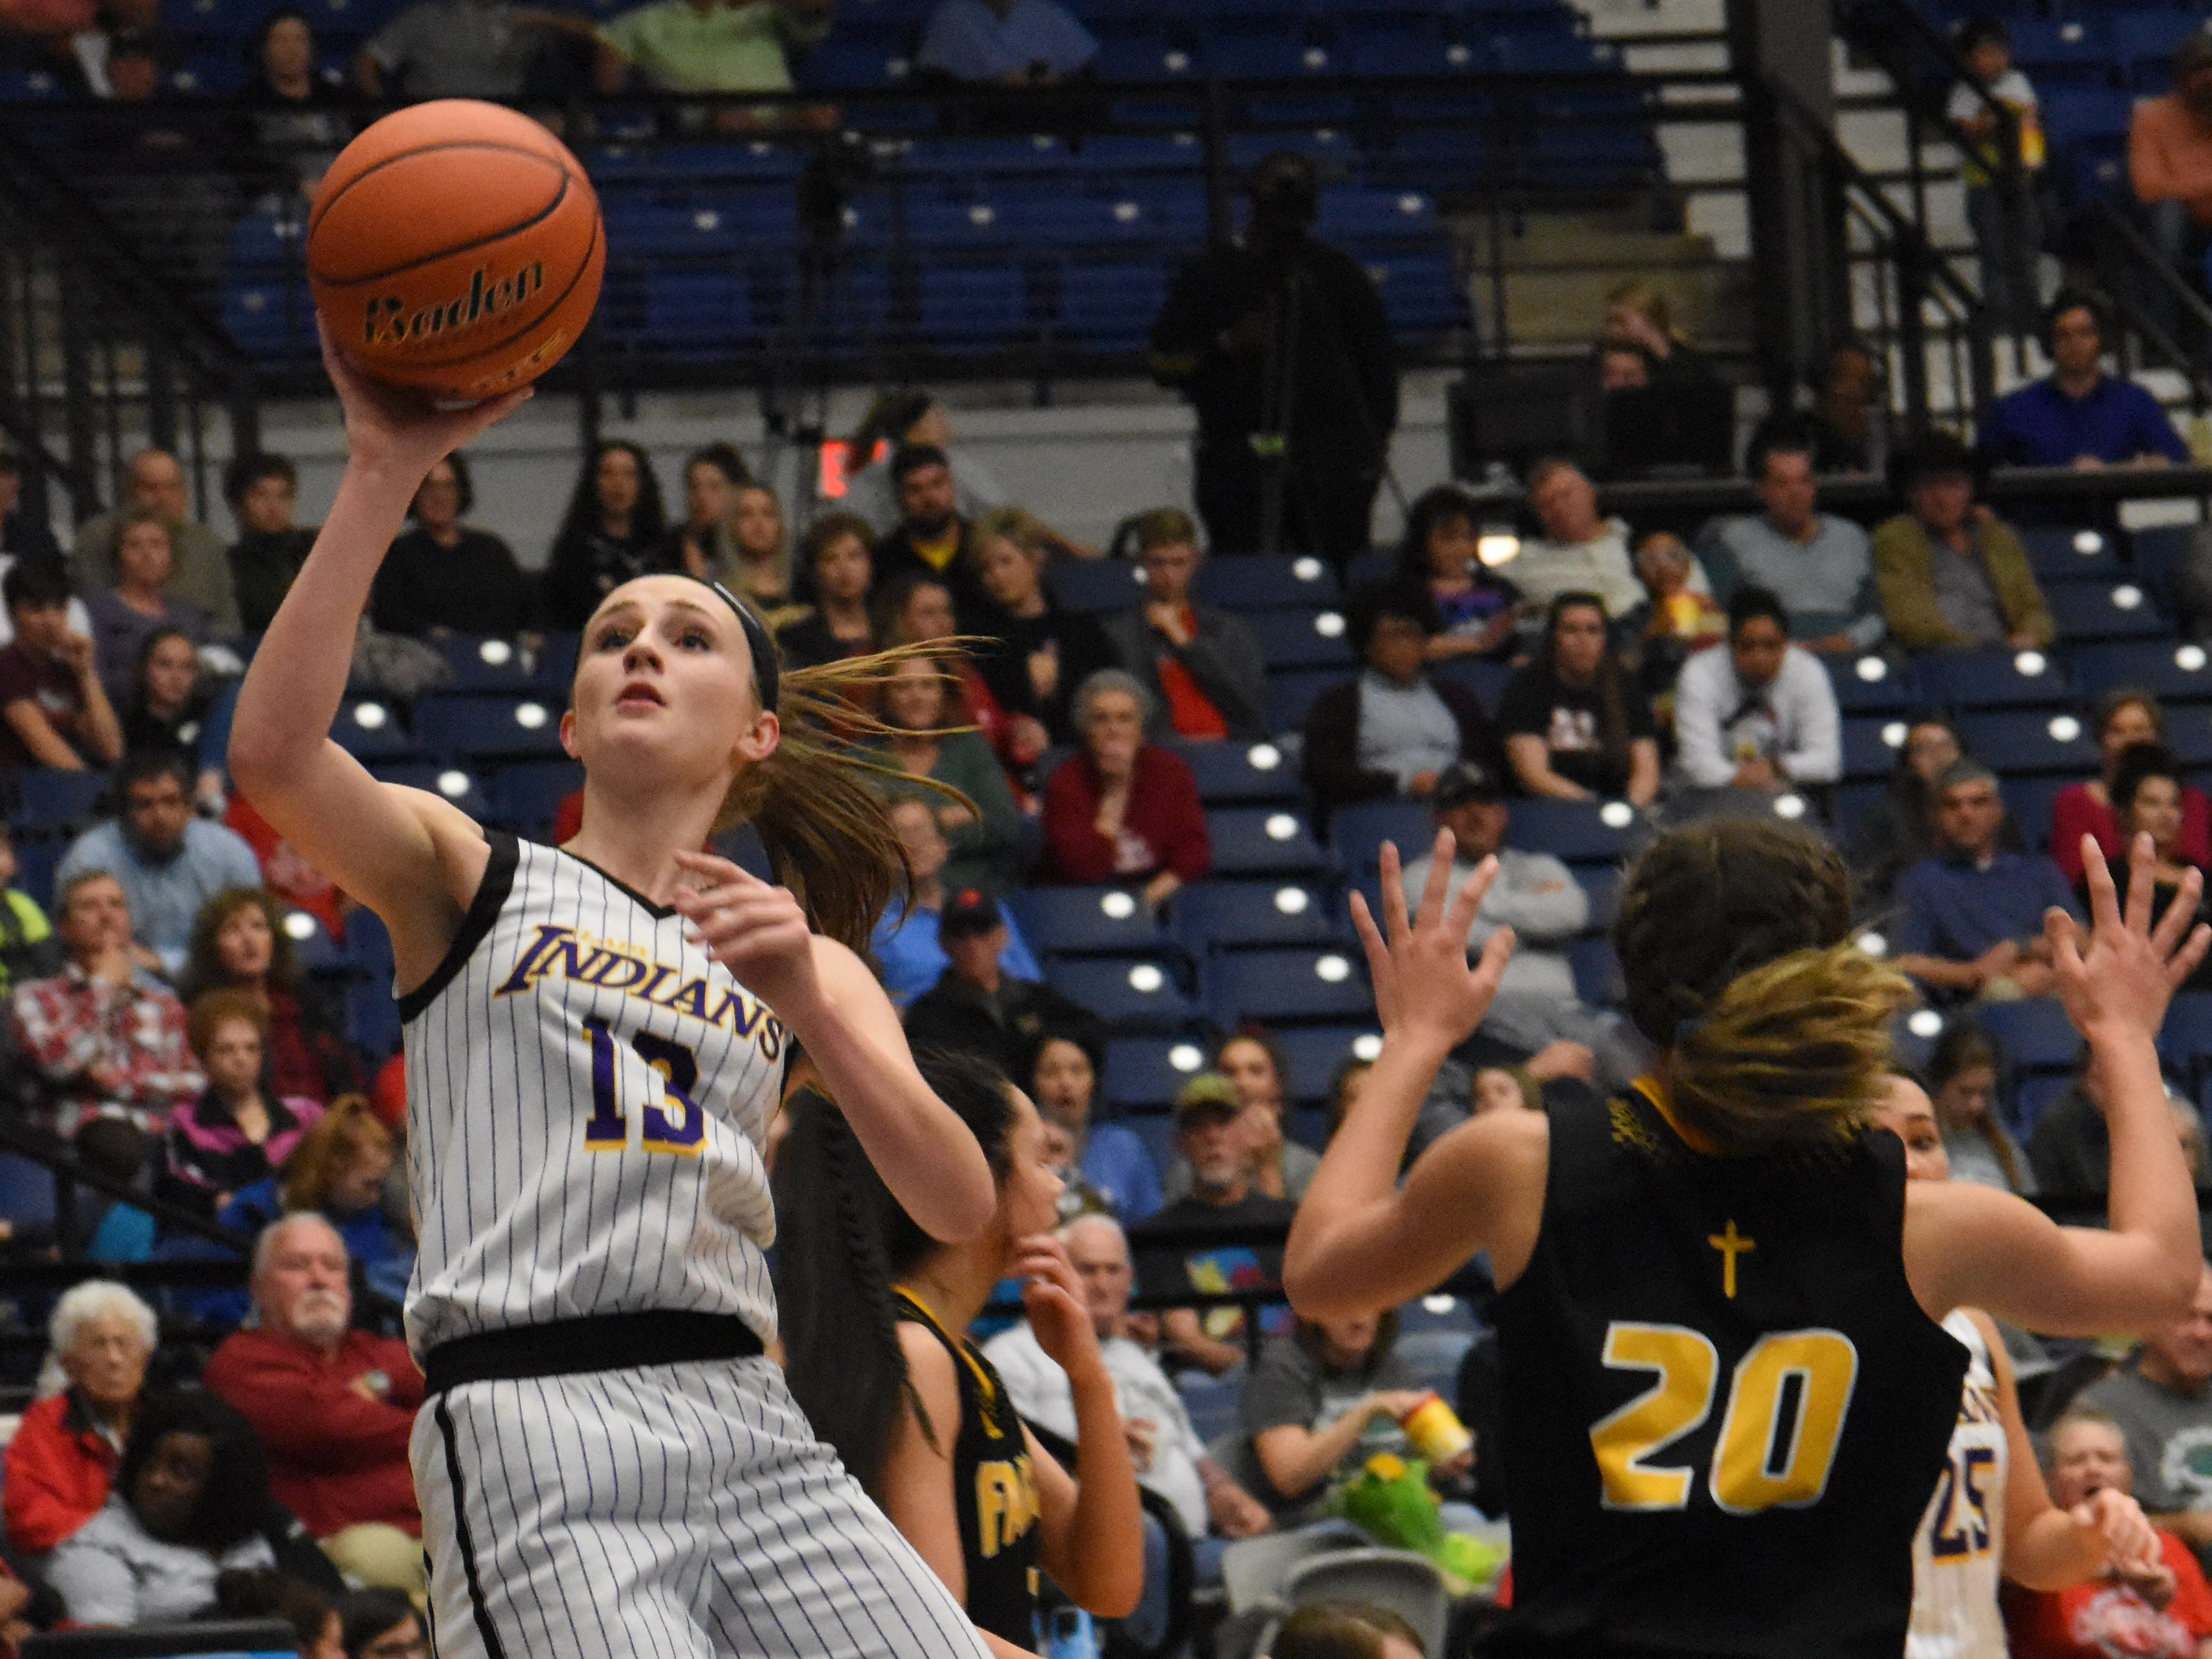 Anacoco's Ellie MacDonald tries to shoot against Fairview in the semifinals of the Class B semifinals Wednesday, Feb. 27, 2019 at the Rapides Parish Coliseum. MacDonald was named as the MVP of the All-District 4-B team.